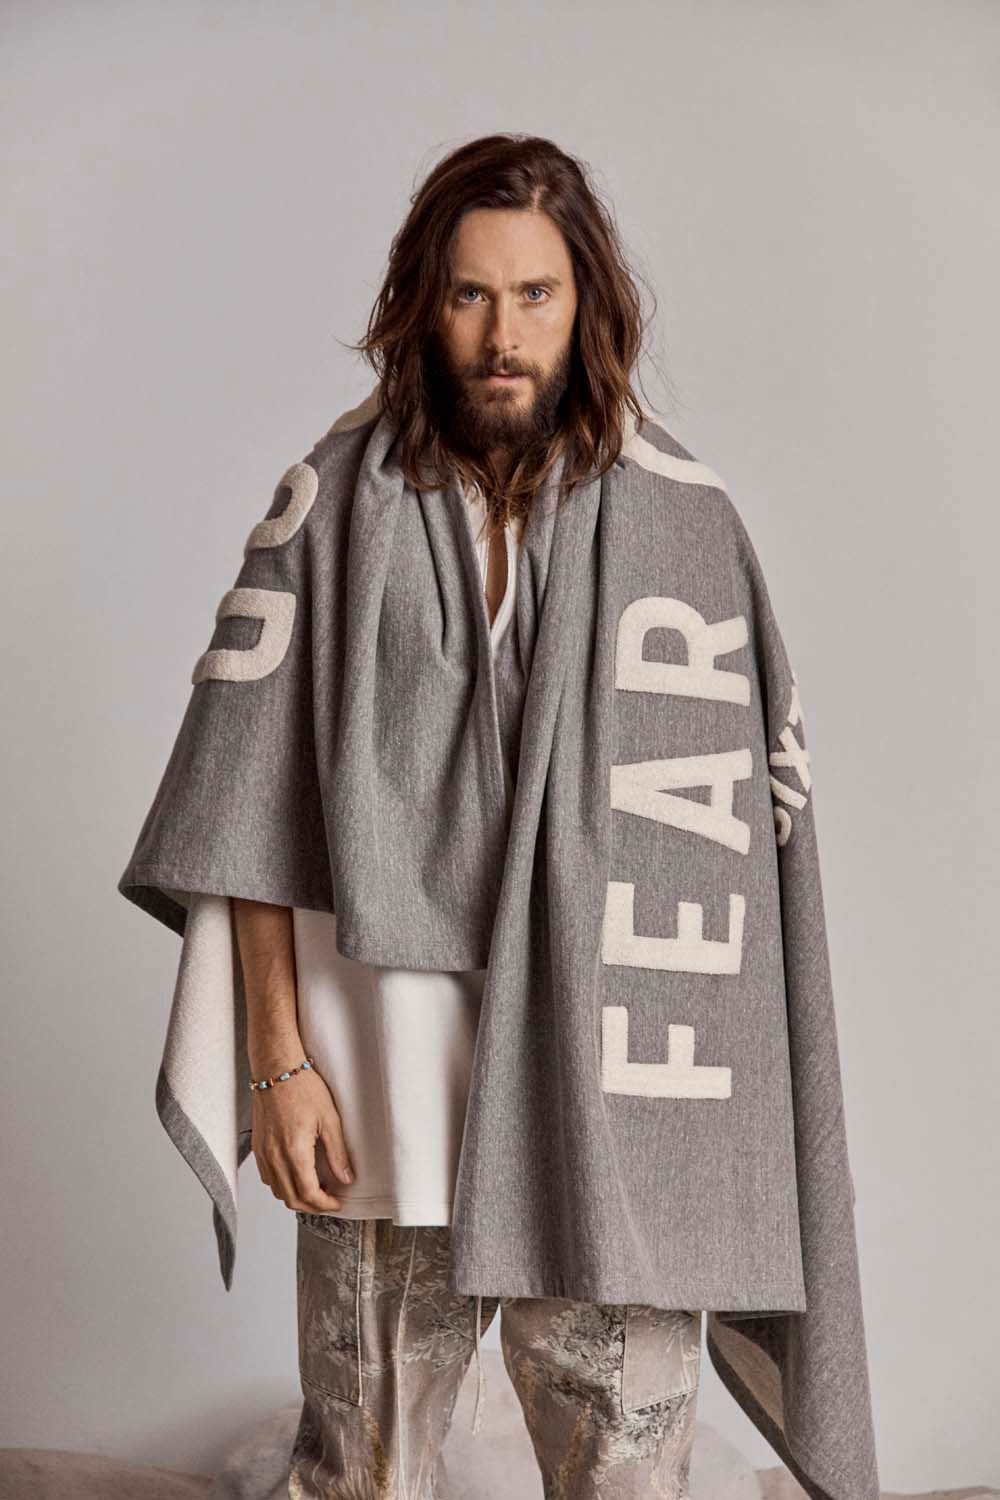 https_%2F%2Fhypebeast.com%2Fimage%2F2018%2F09%2Ffear-of-god-6-sixth-collection-jared-leto-nike-00.jpg